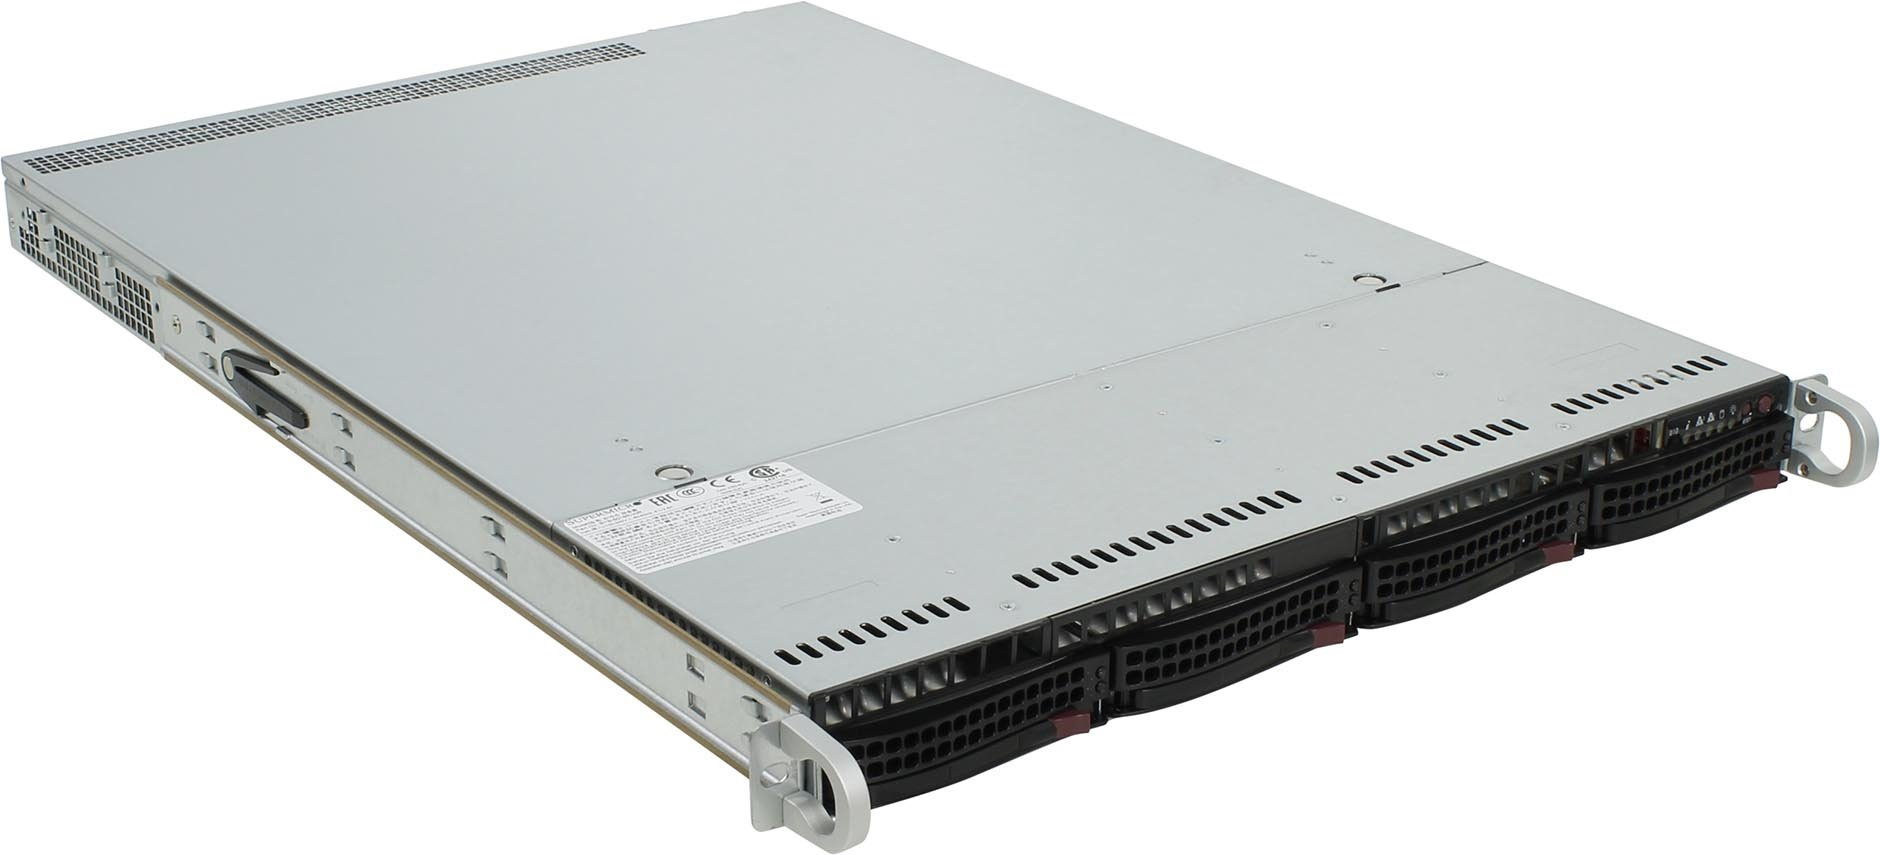 SERVER Rack 1120 0671480 1xE5-2603V4/1x8gb/2x1tb/2x500w/Windows Server 2019 Standard server 400